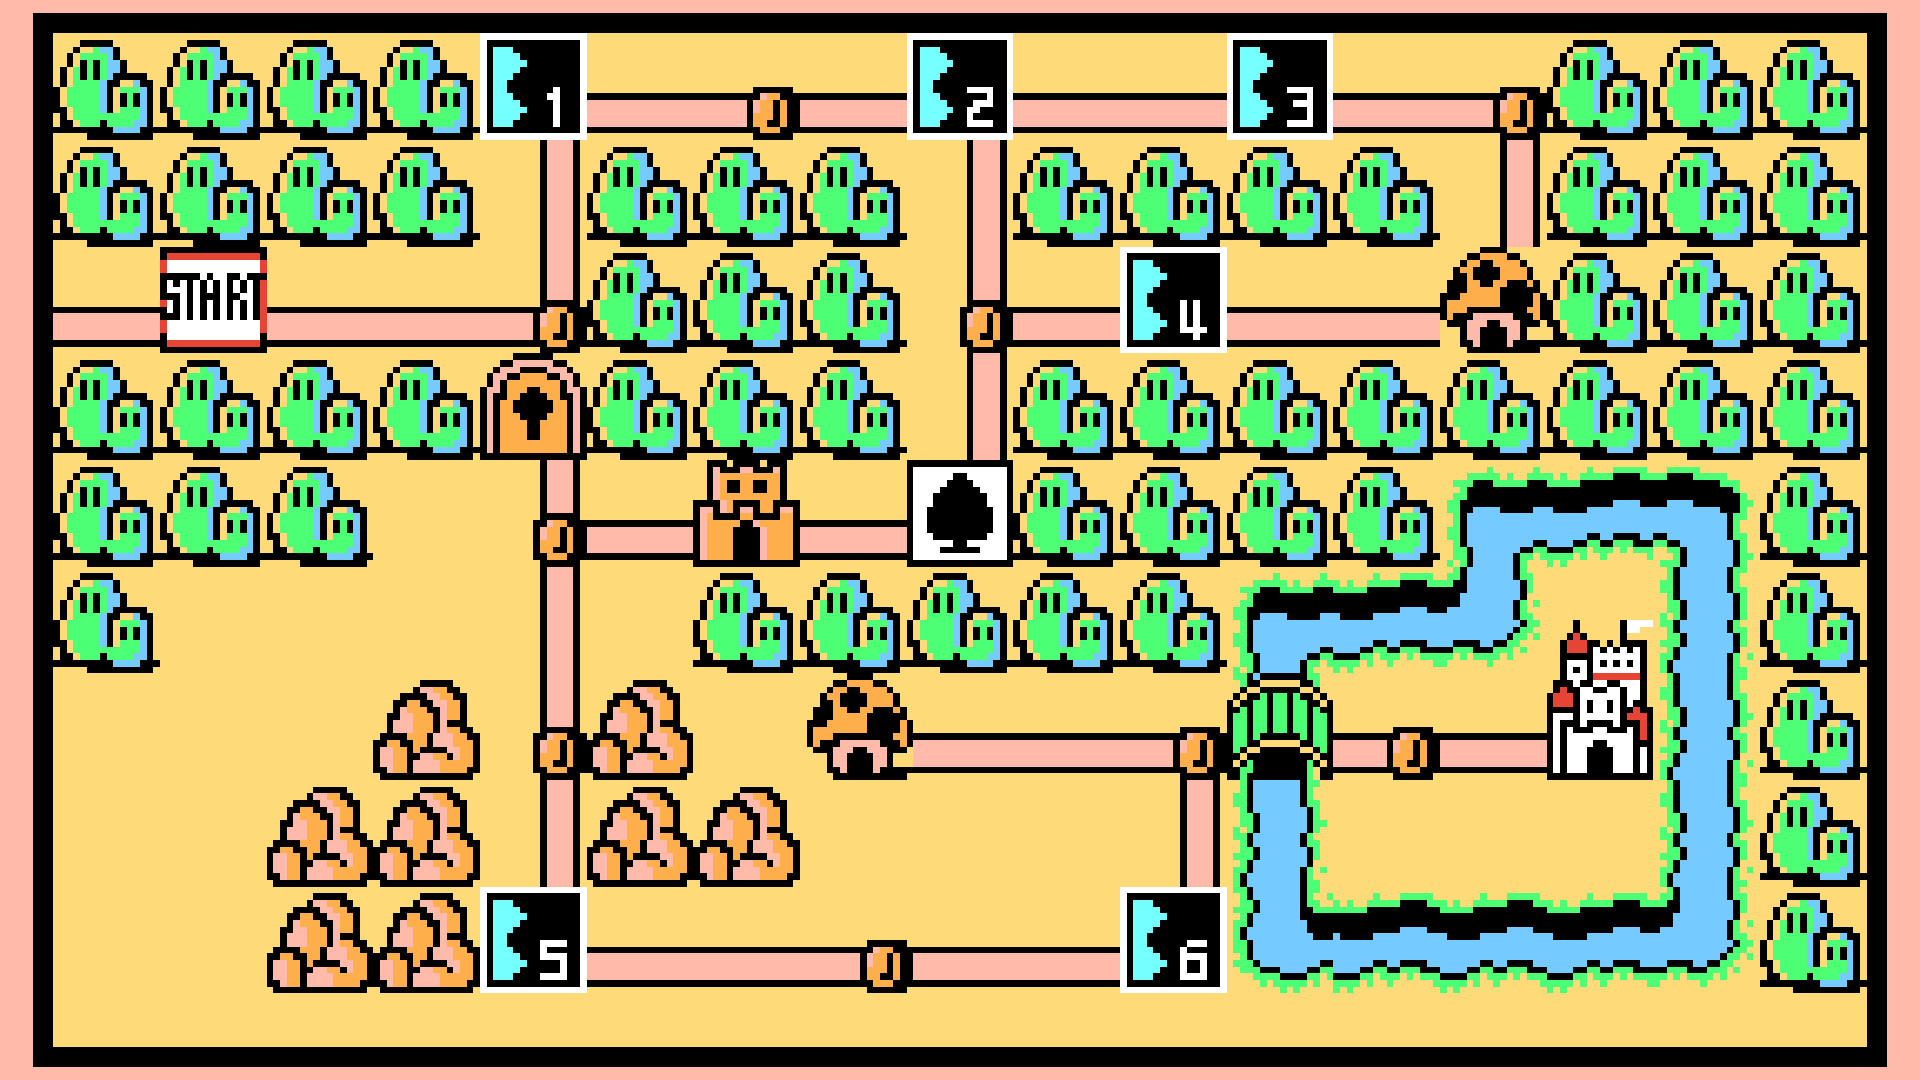 Super mario bros 3 archives as movies games super mario bros 3 map gumiabroncs